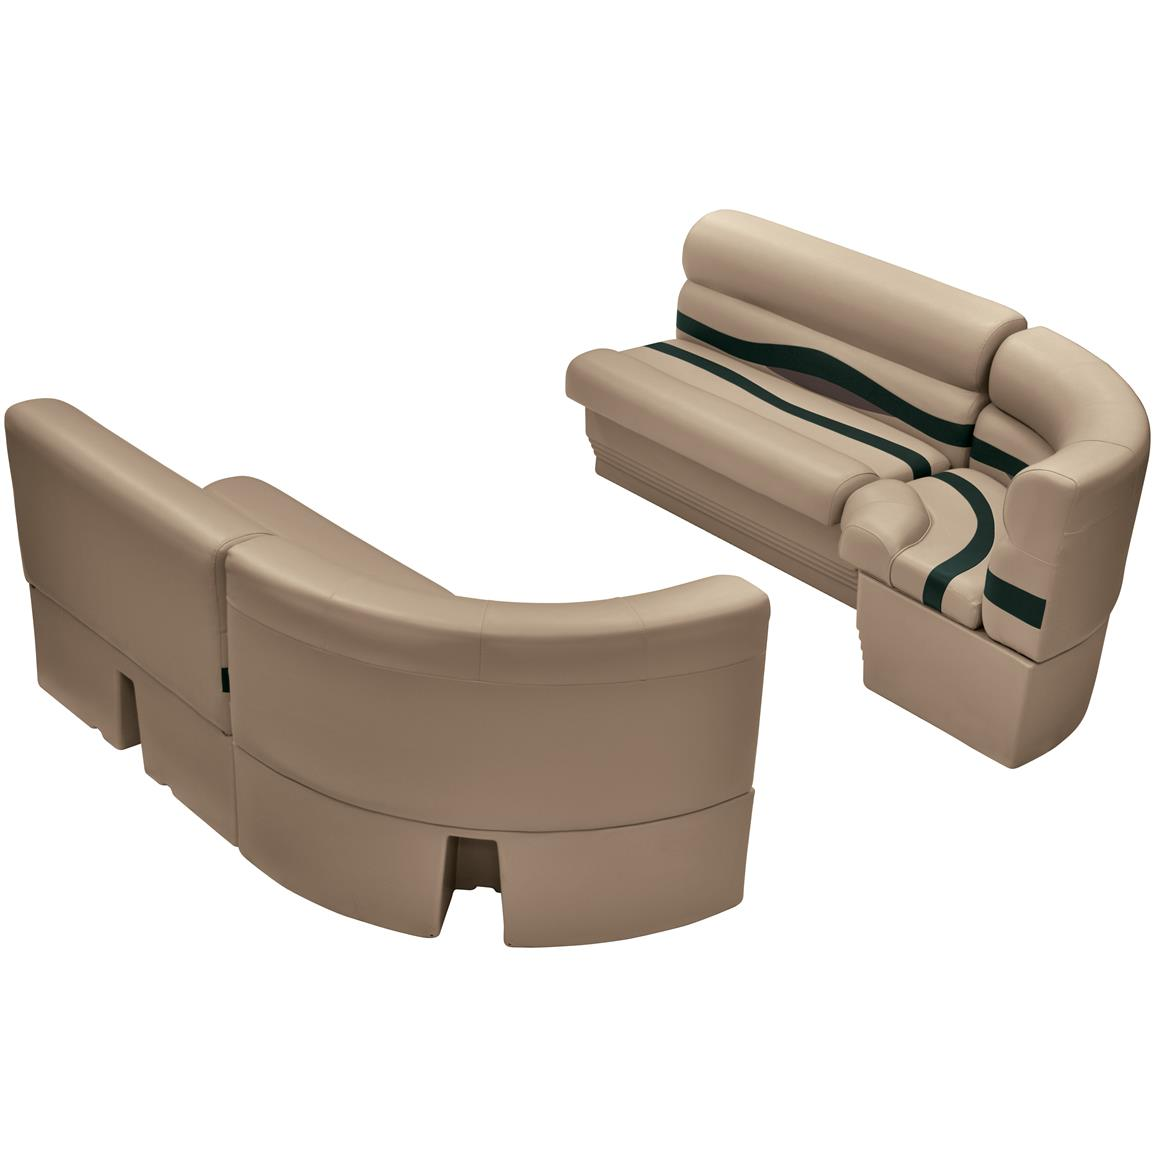 Wise® Premier Pontoon Medium Bow Radius Front Seating Group, Color C: Mocha Java Punch / Evergreen / Rock Salt